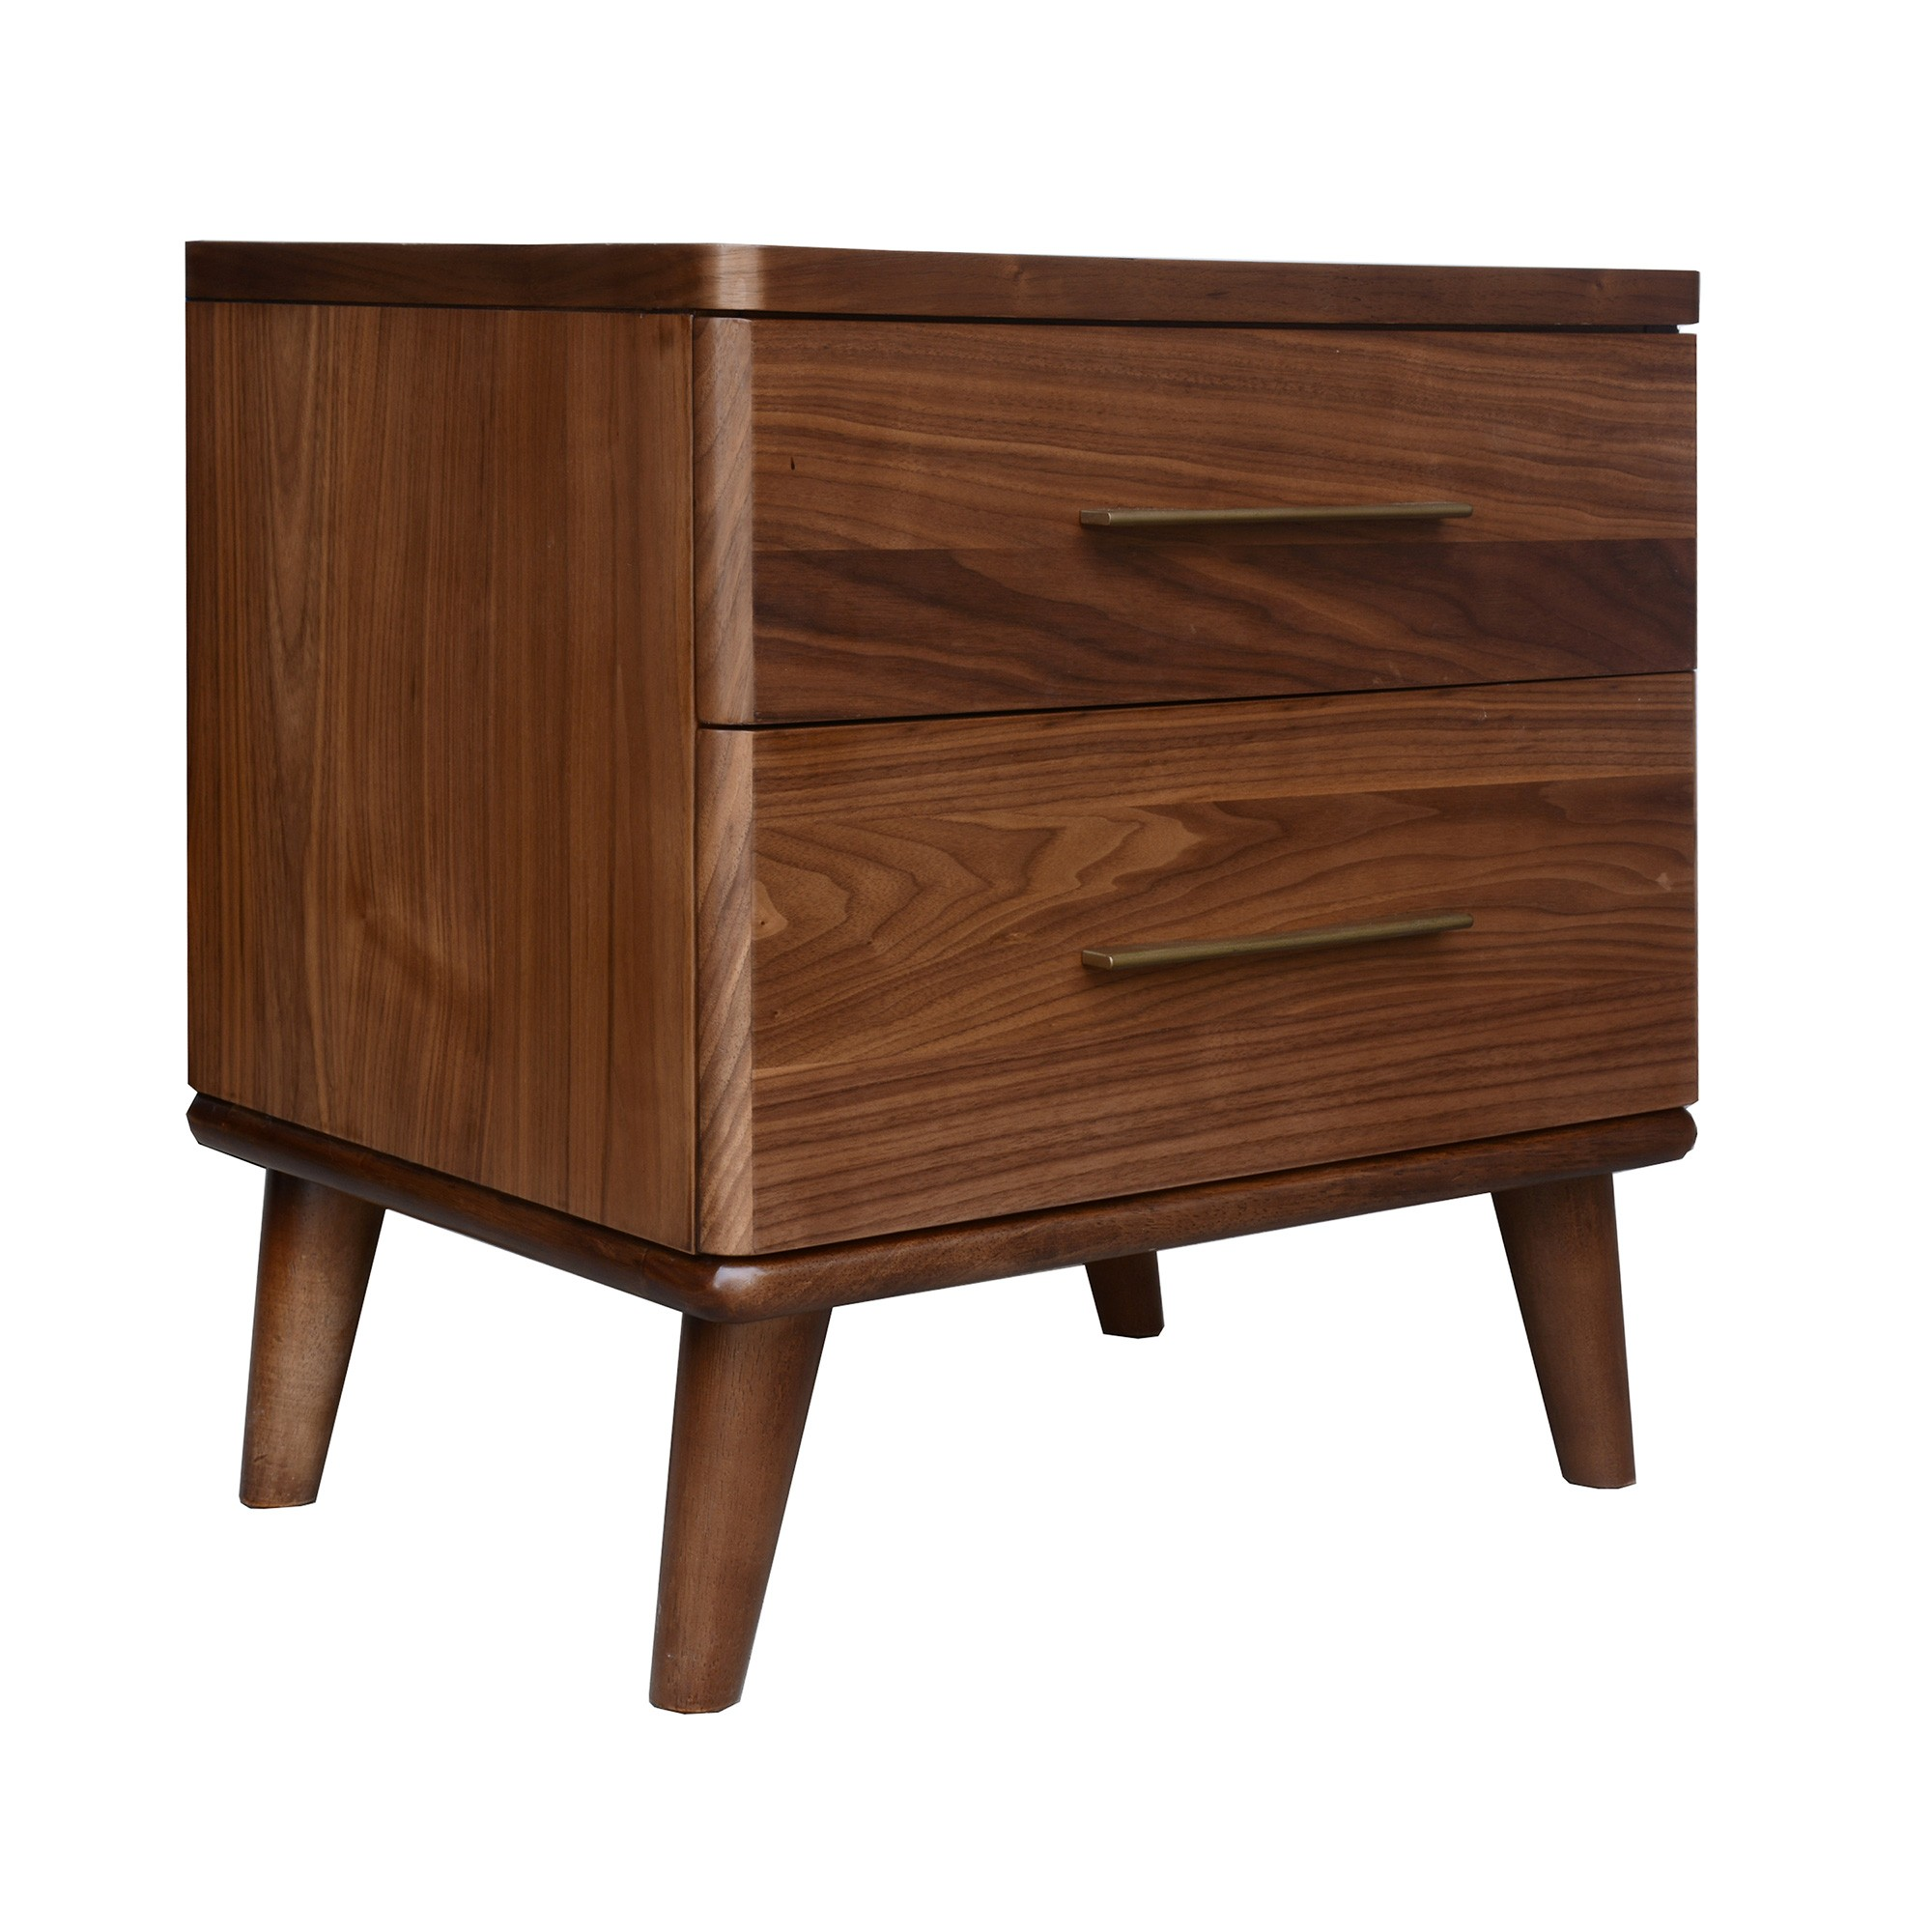 Stella Wooden Bedside Table, Walnut